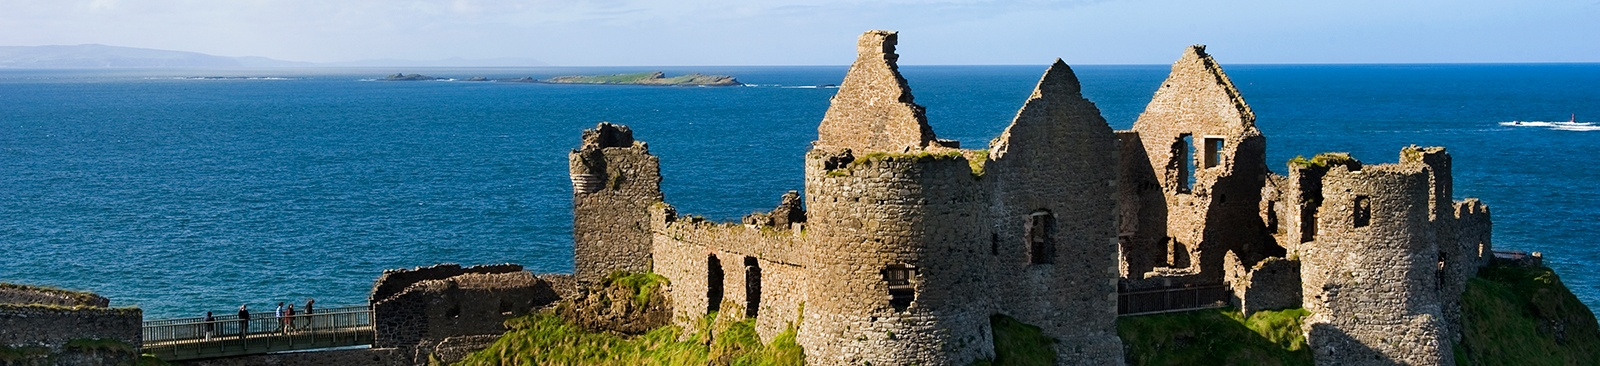 Castle ruins overlooking the ocean